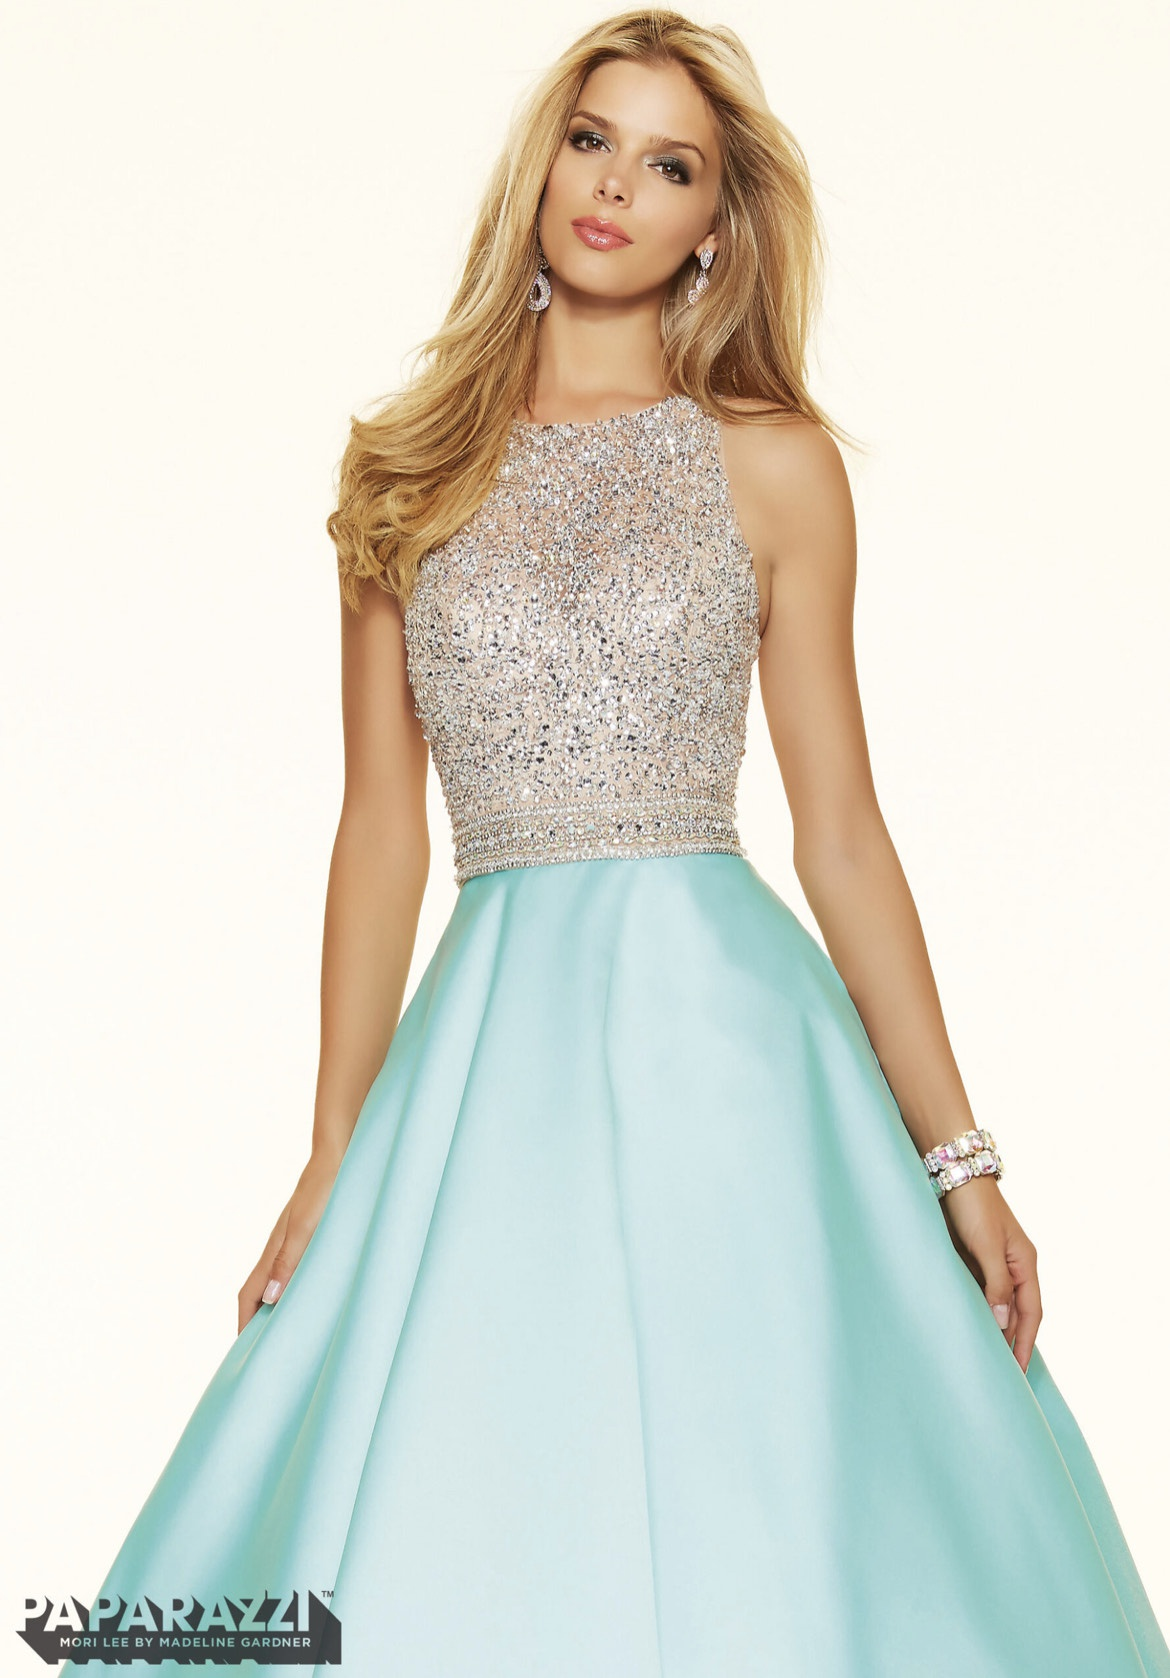 Mori Lee Blue Size 8 Prom Turquoise Short Height A-line Dress on Queenly